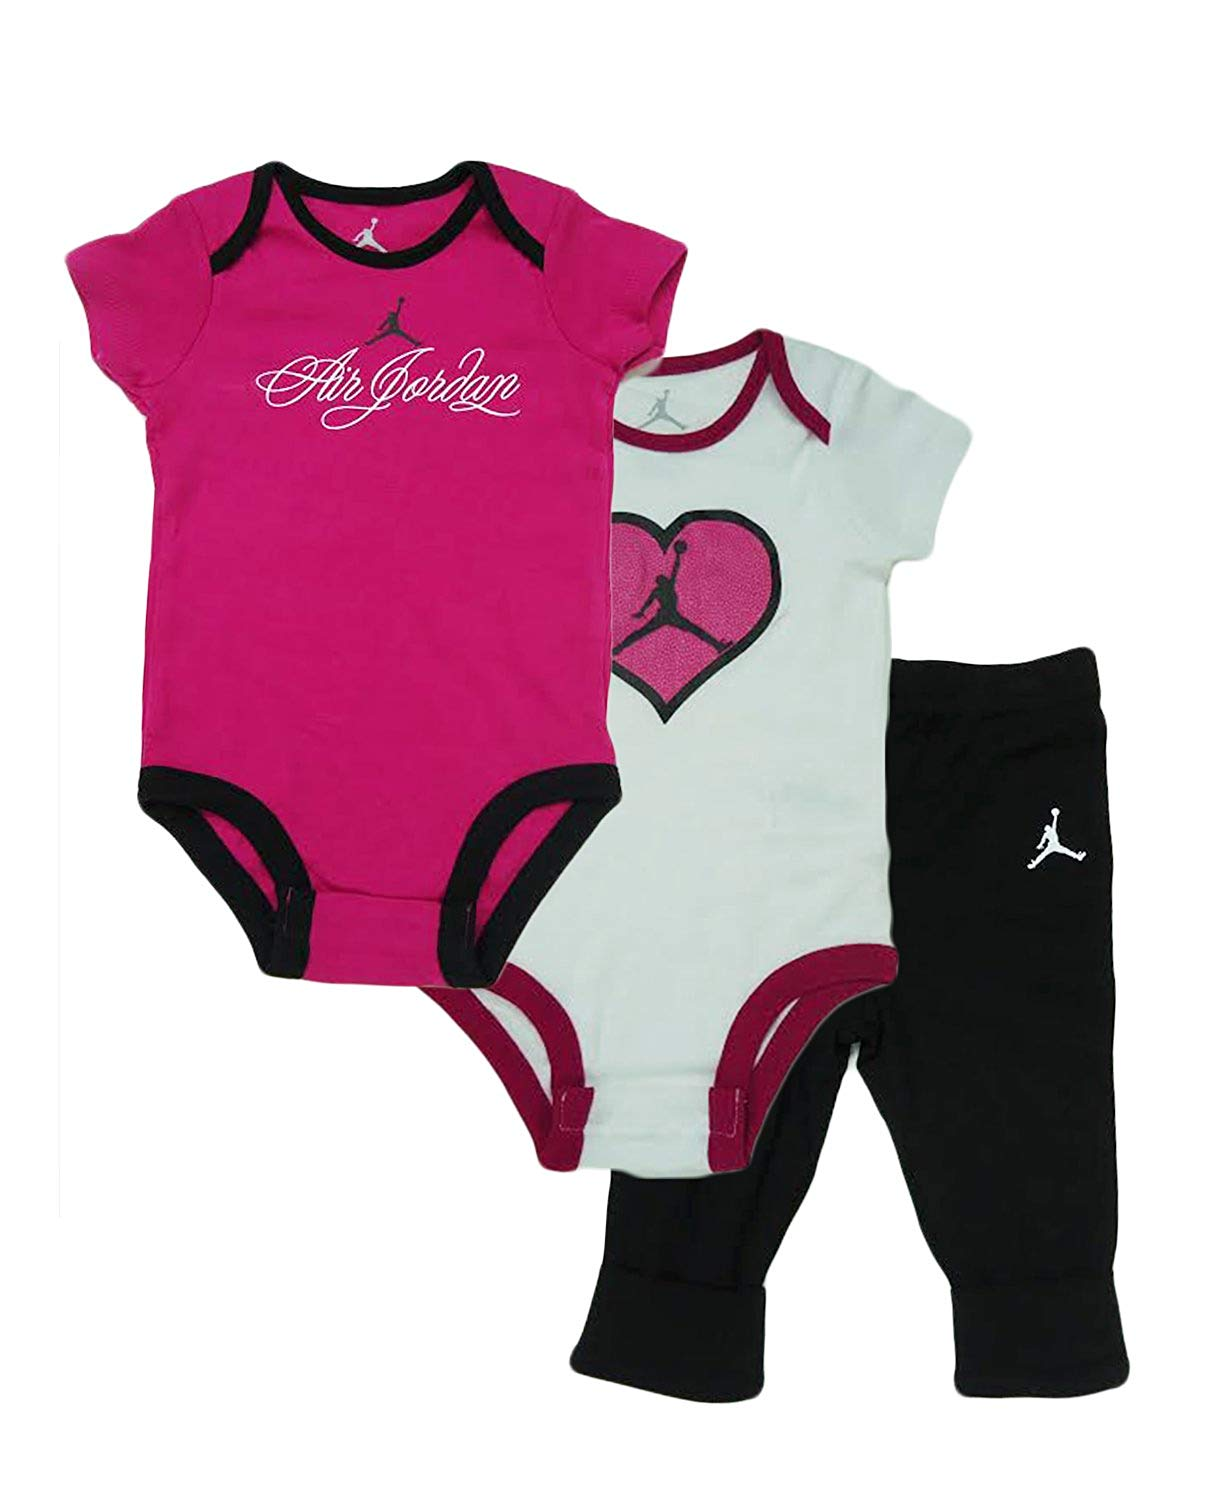 672776bd2cc New Nike 3 Piece Bodysuit Bottom Set - Infant - Baby Clothes, Baby ...